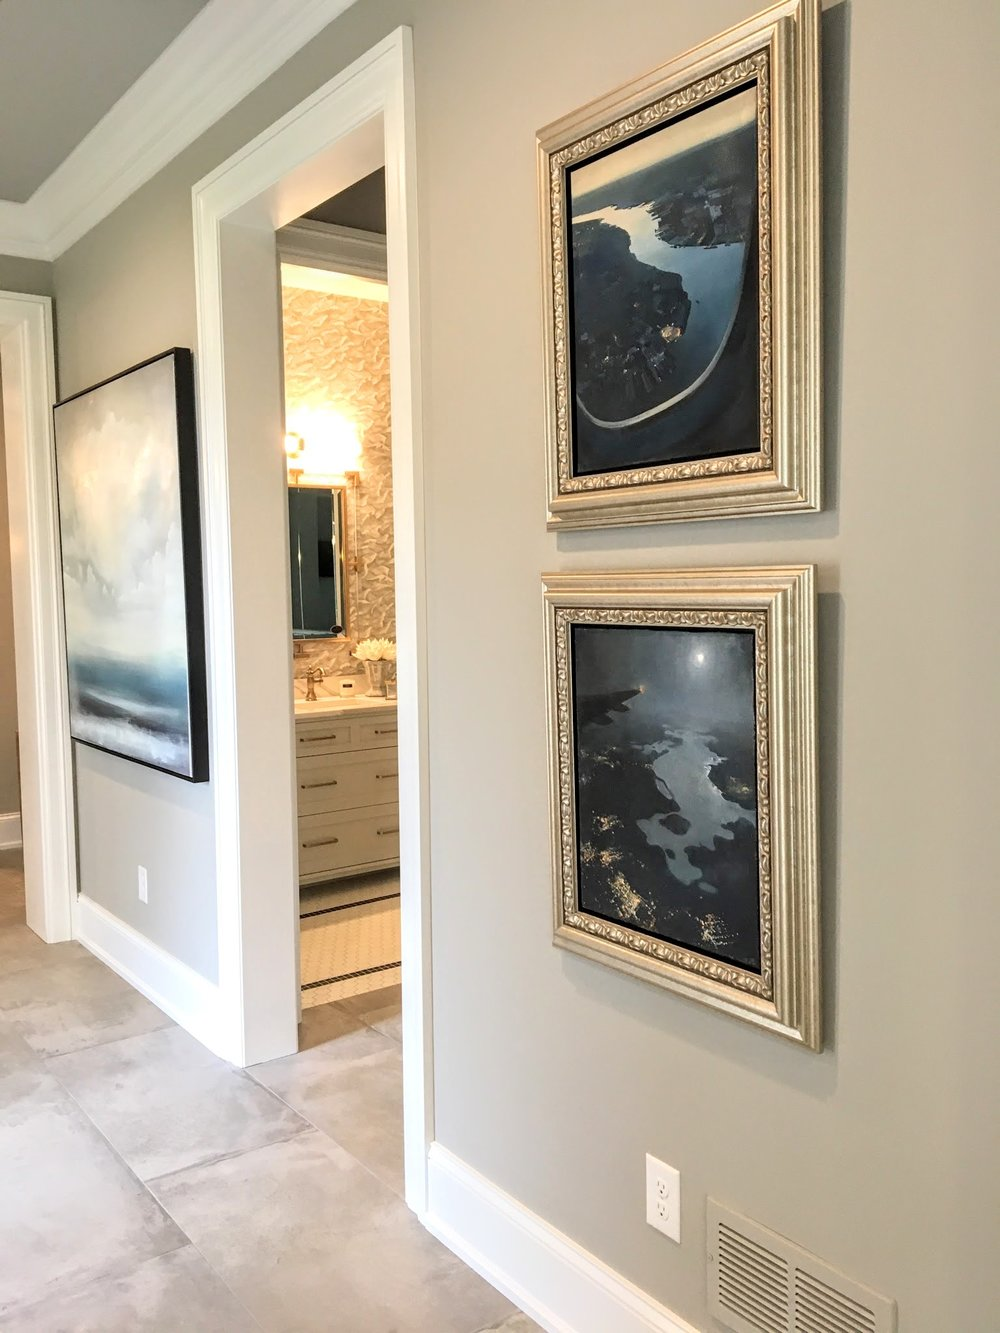 ASID Showcase home tour 2017 - Haxton, ScapeVictoria Kutukova, Flying over Ukraine and Flying over EuropeFine House InteriorsJohn Kraemer and Sons